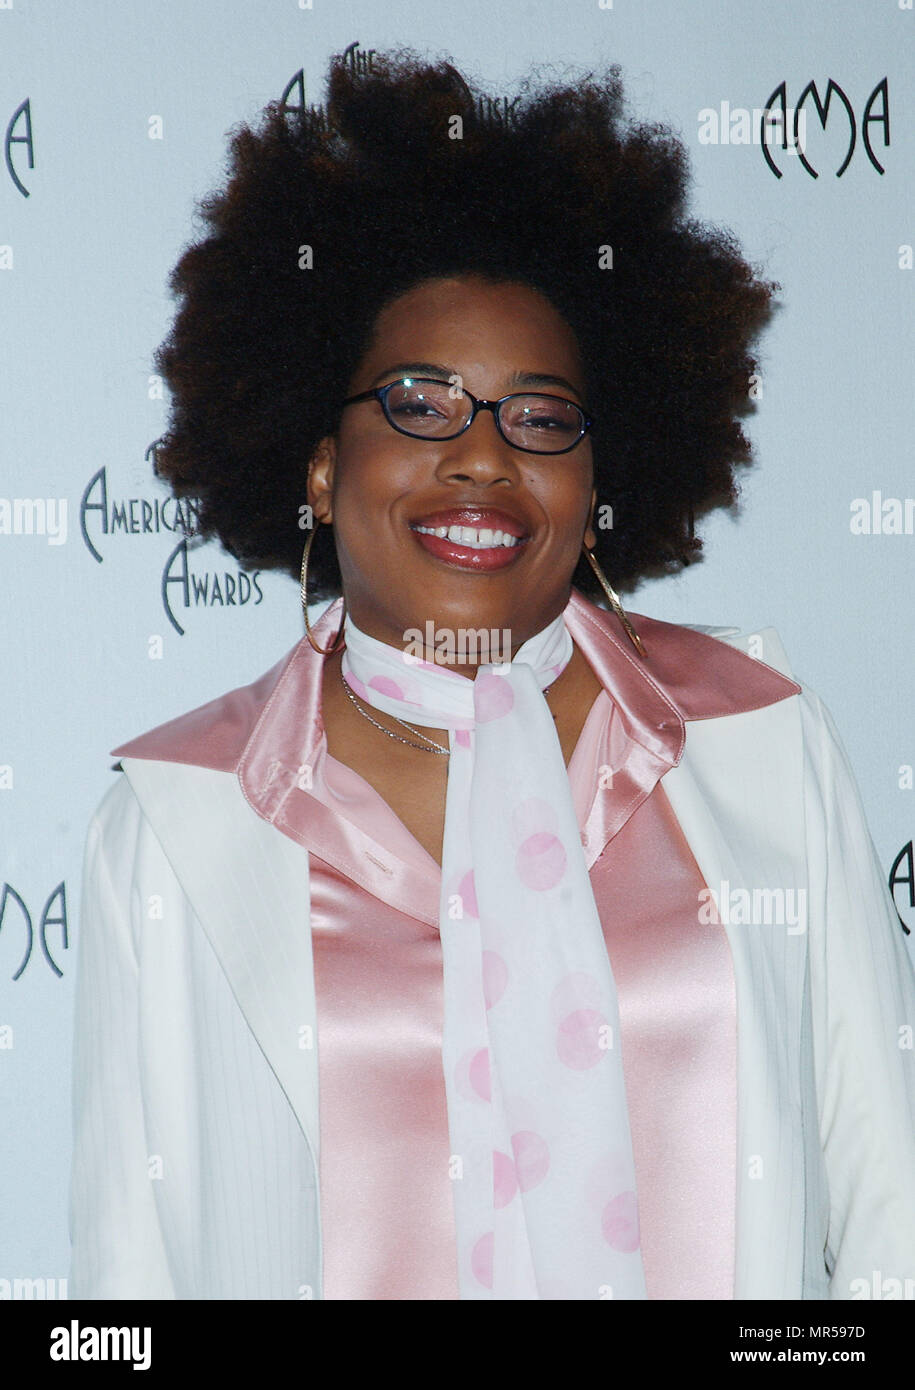 Macy Gray presenting the nominees at the American Music Awards at the Beverly Hills Hotel in Los Angeles. September 16, 2003.GrayMacy_05 Red Carpet Event, Vertical, USA, Film Industry, Celebrities,  Photography, Bestof, Arts Culture and Entertainment, Topix Celebrities fashion /  Vertical, Best of, Event in Hollywood Life - California,  Red Carpet and backstage, USA, Film Industry, Celebrities,  movie celebrities, TV celebrities, Music celebrities, Photography, Bestof, Arts Culture and Entertainment,  Topix, headshot, vertical, one person,, from the year , 2003, inquiry tsuni@Gamma-USA.com - Stock Image